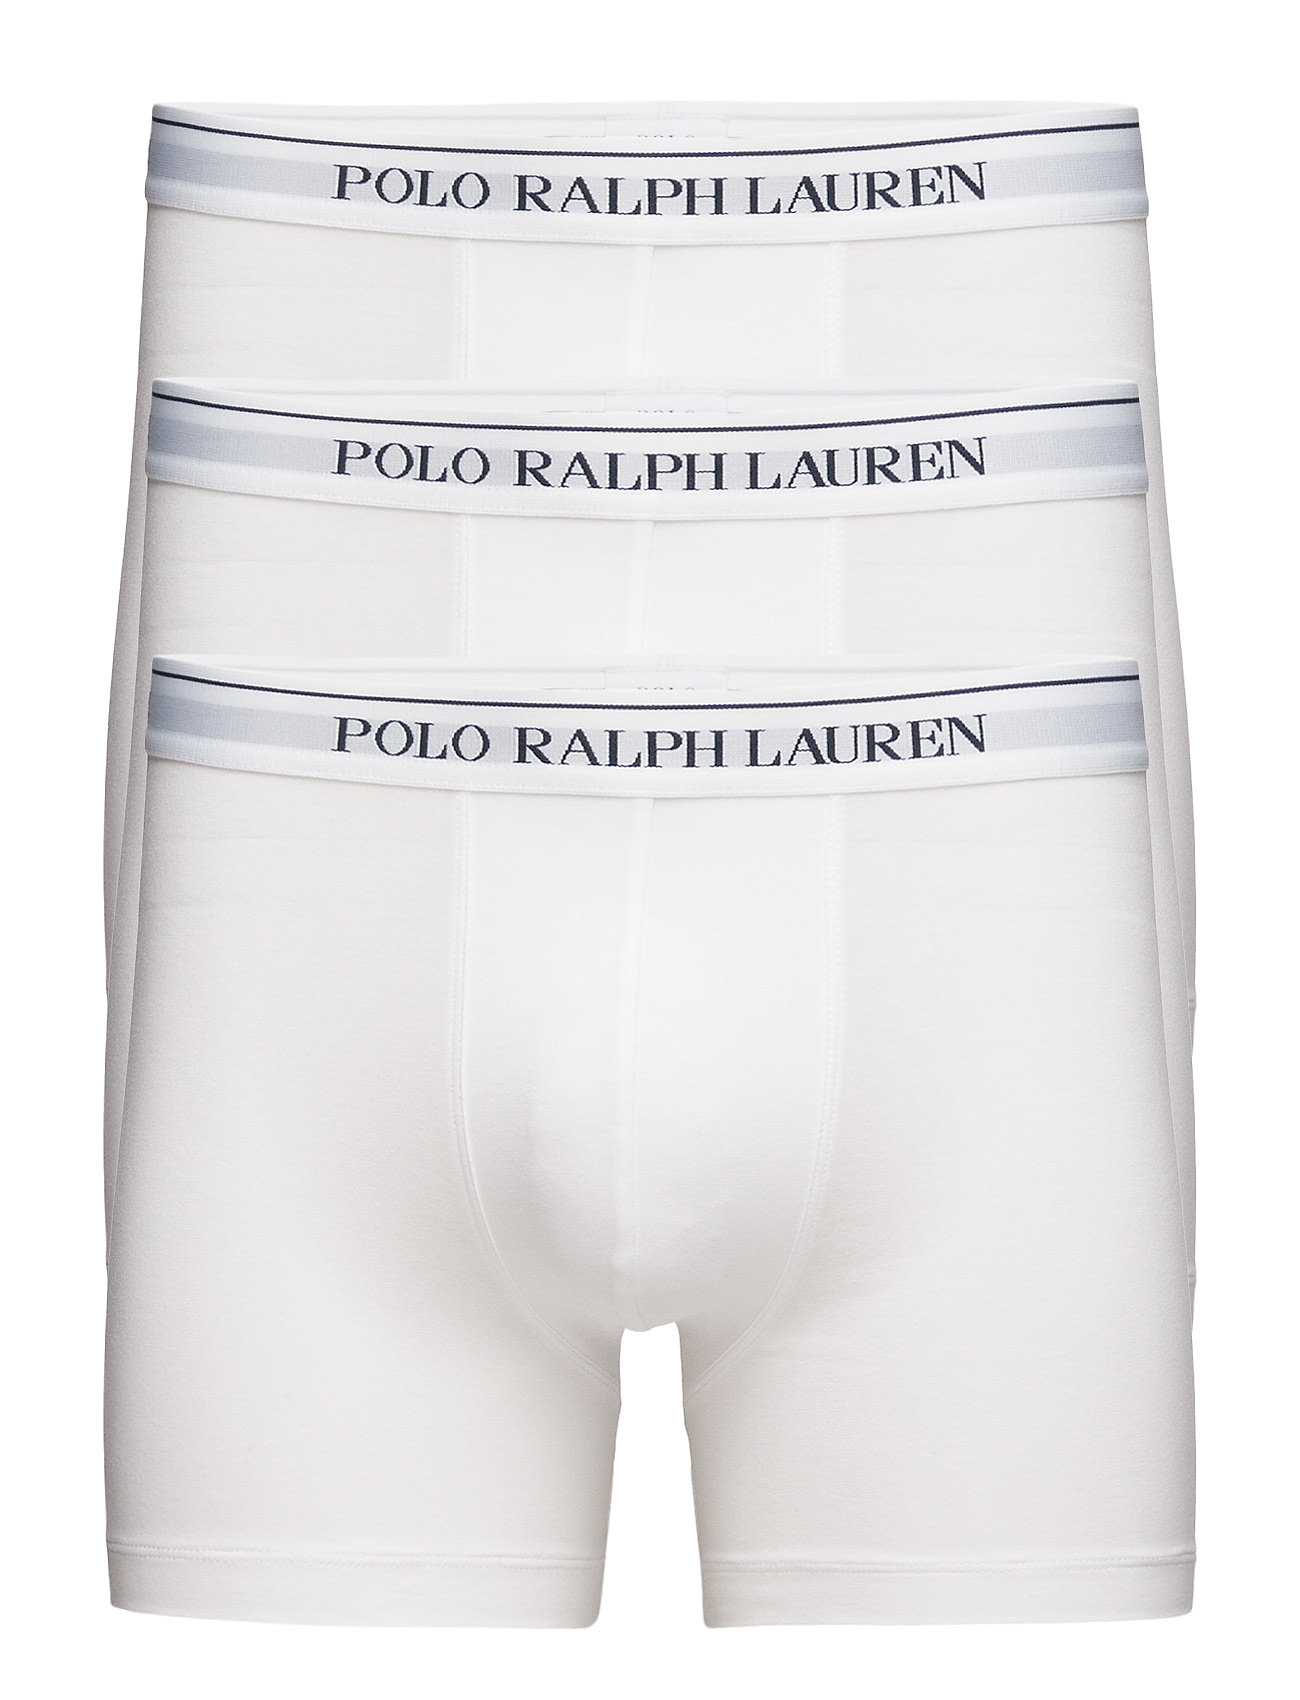 2c01a5ba3d Stretch-cotton-trunk 3-pack (3pk White) (49.95 €) - Polo Ralph ...